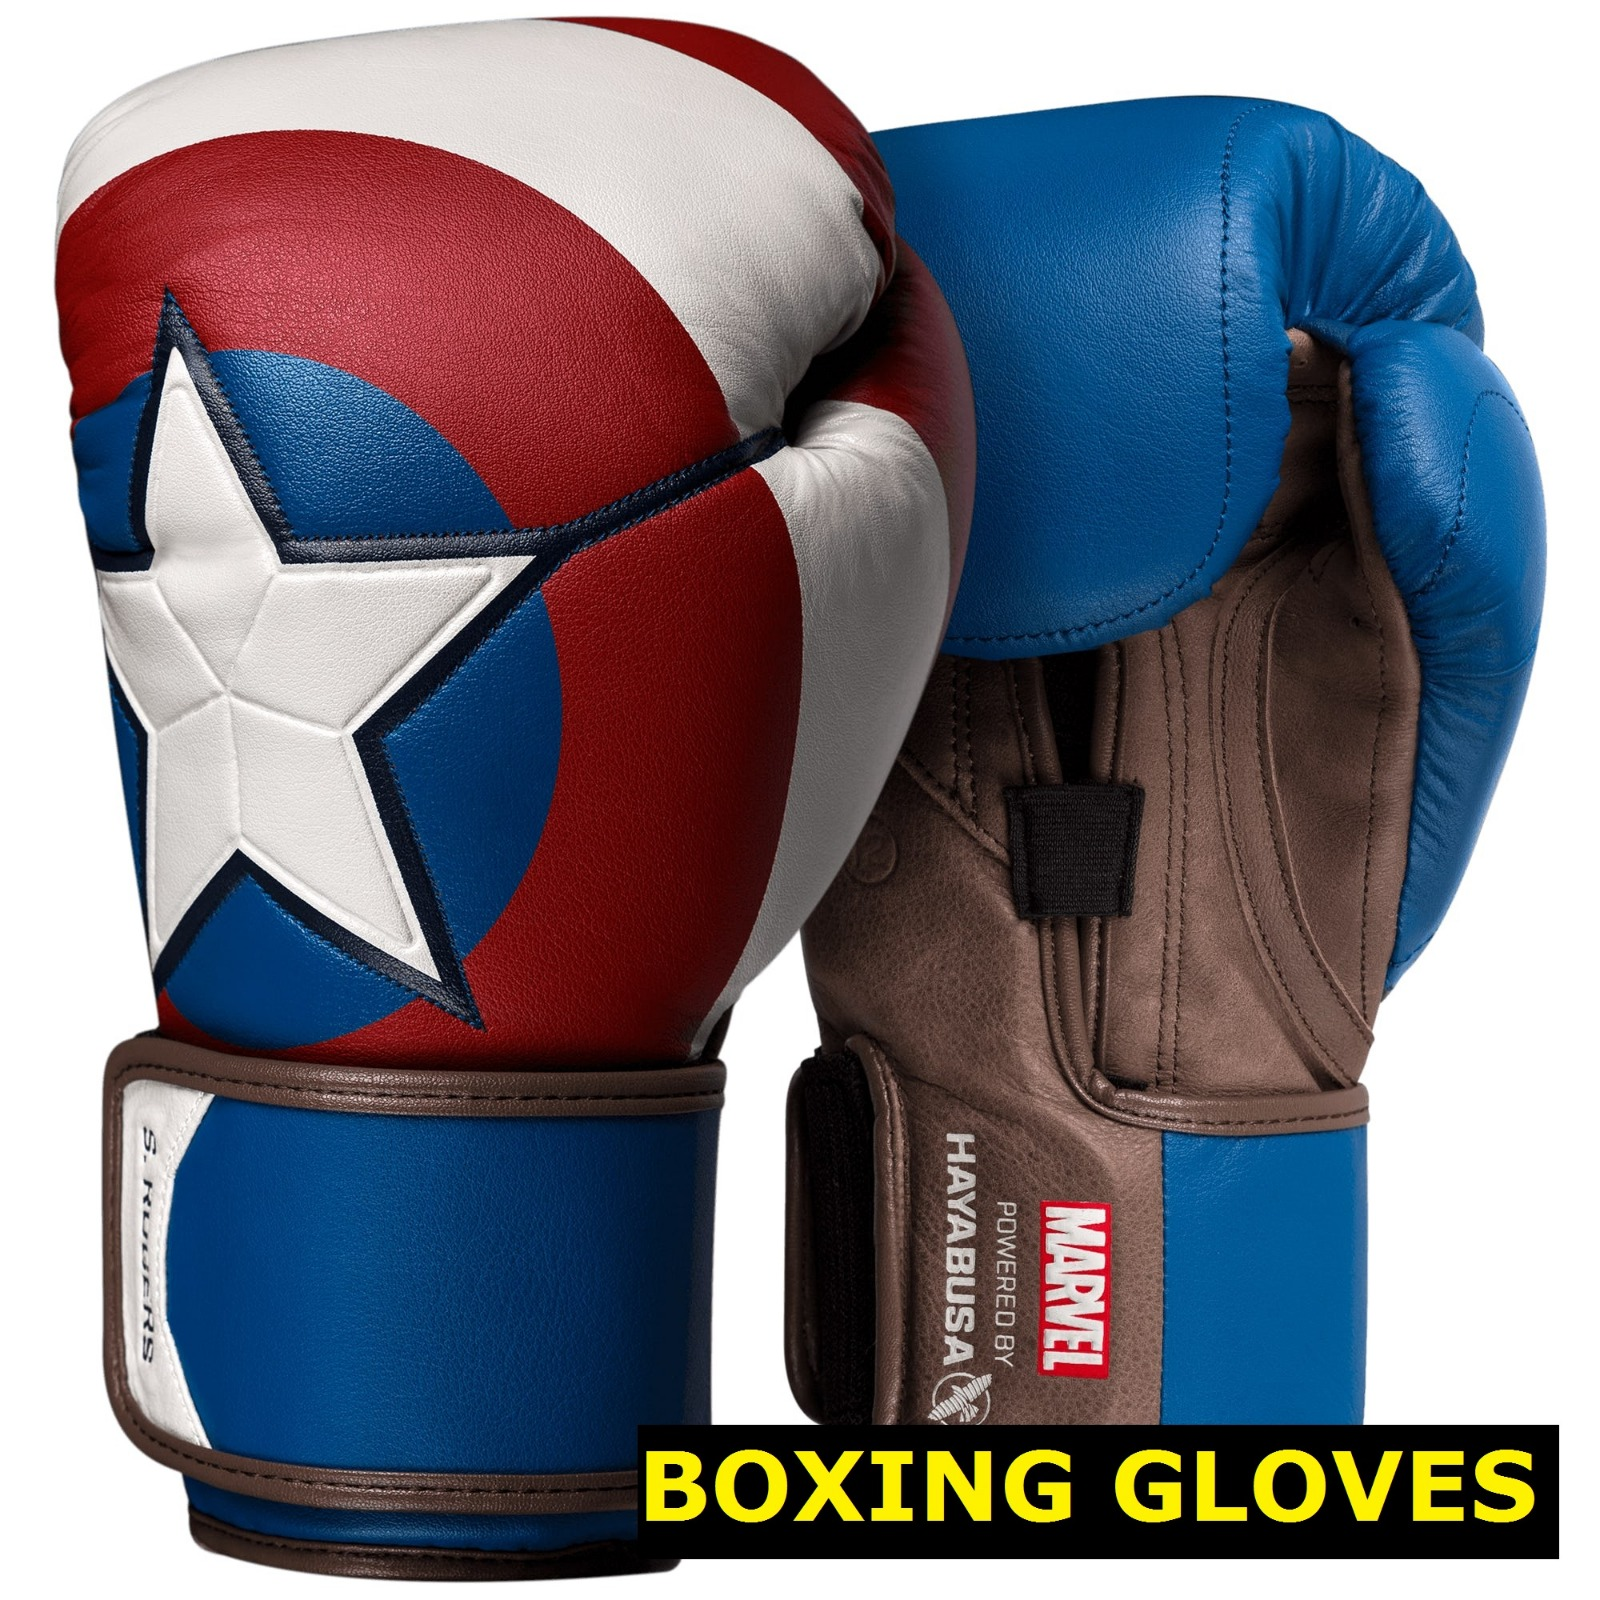 boxing-gloves.jpg